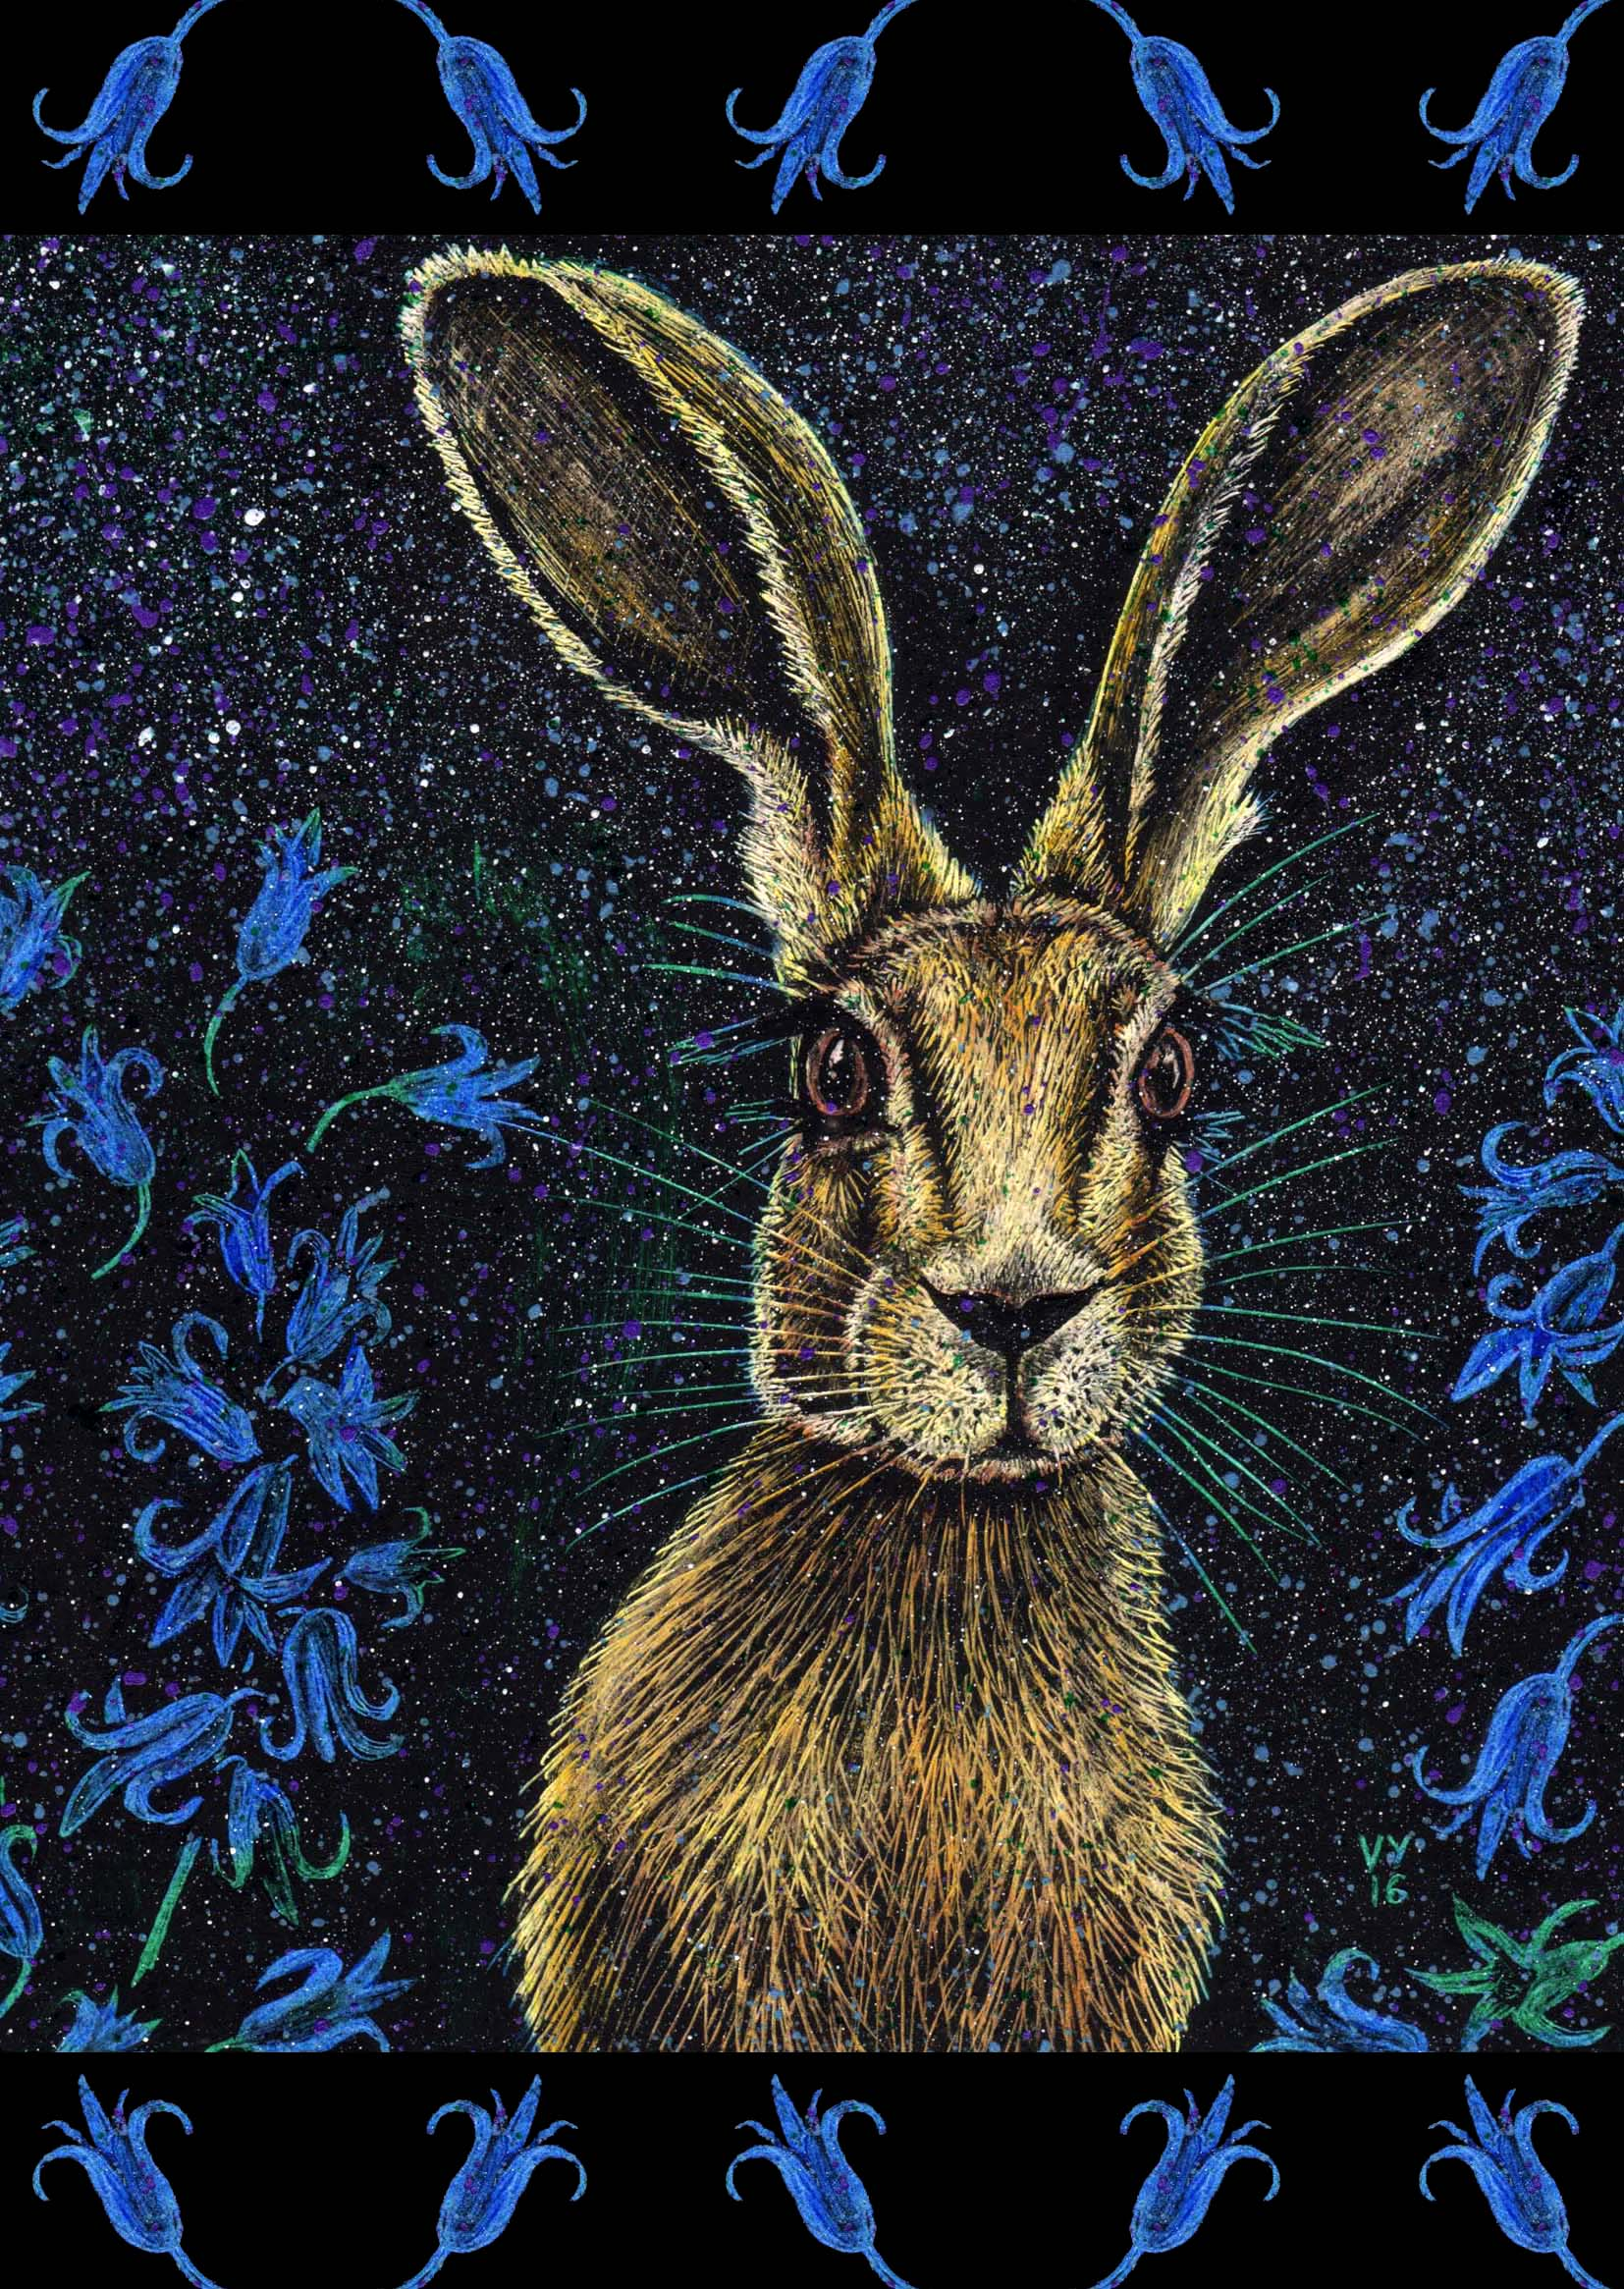 'Bluebell' card